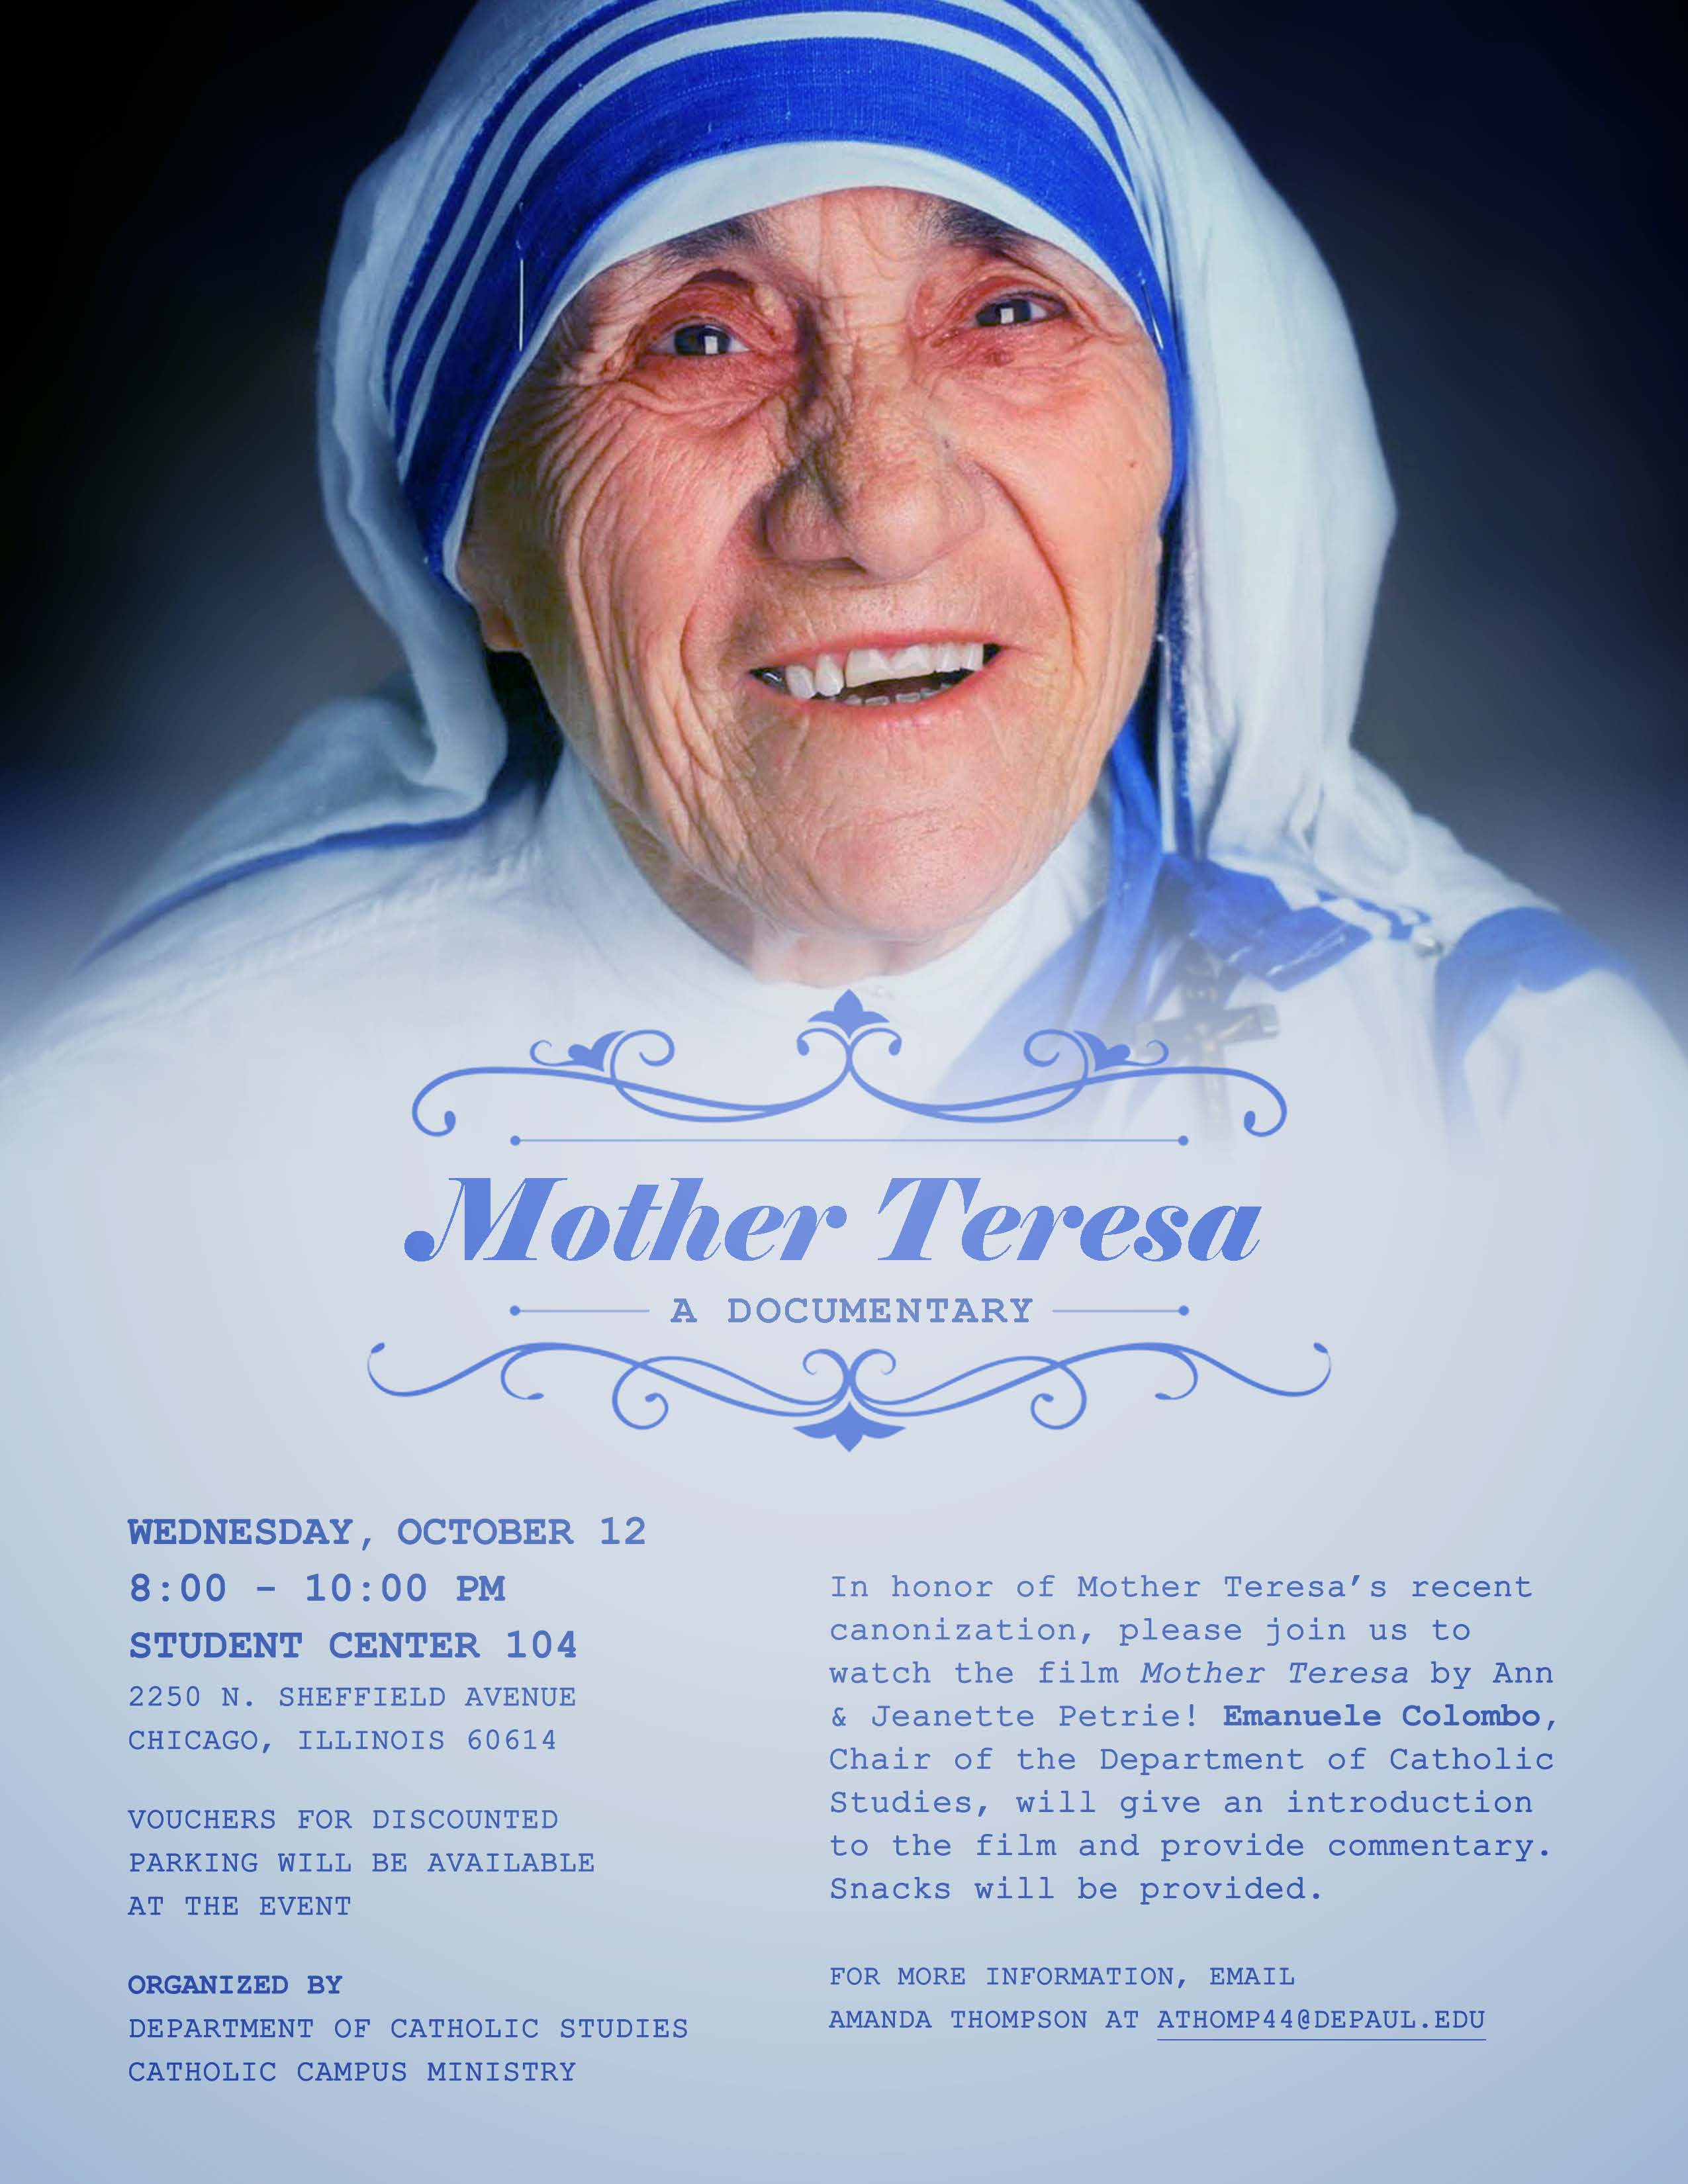 Mother Teresa: A Documentary | Flyer